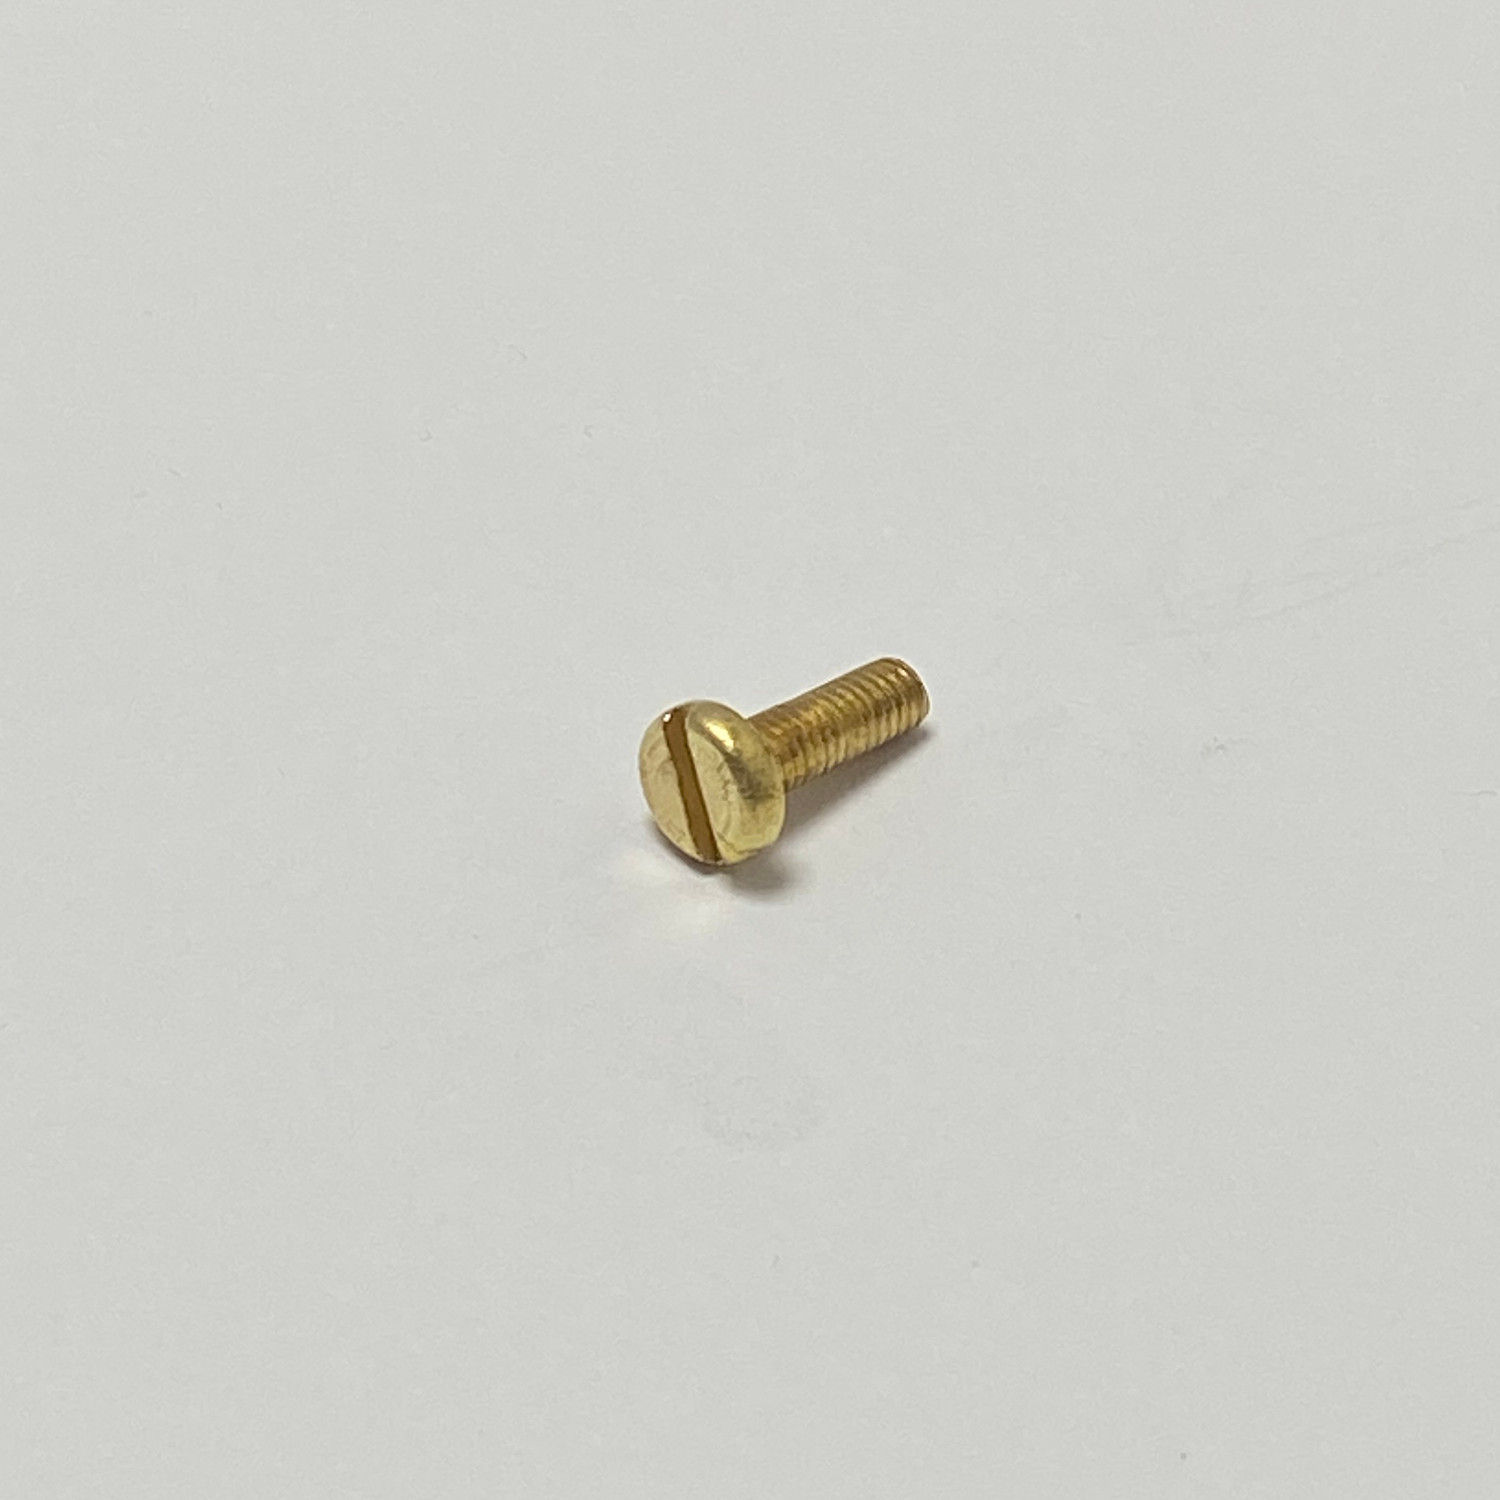 M2 X 3 BRASS SLOTTED CHEESE SCREWS